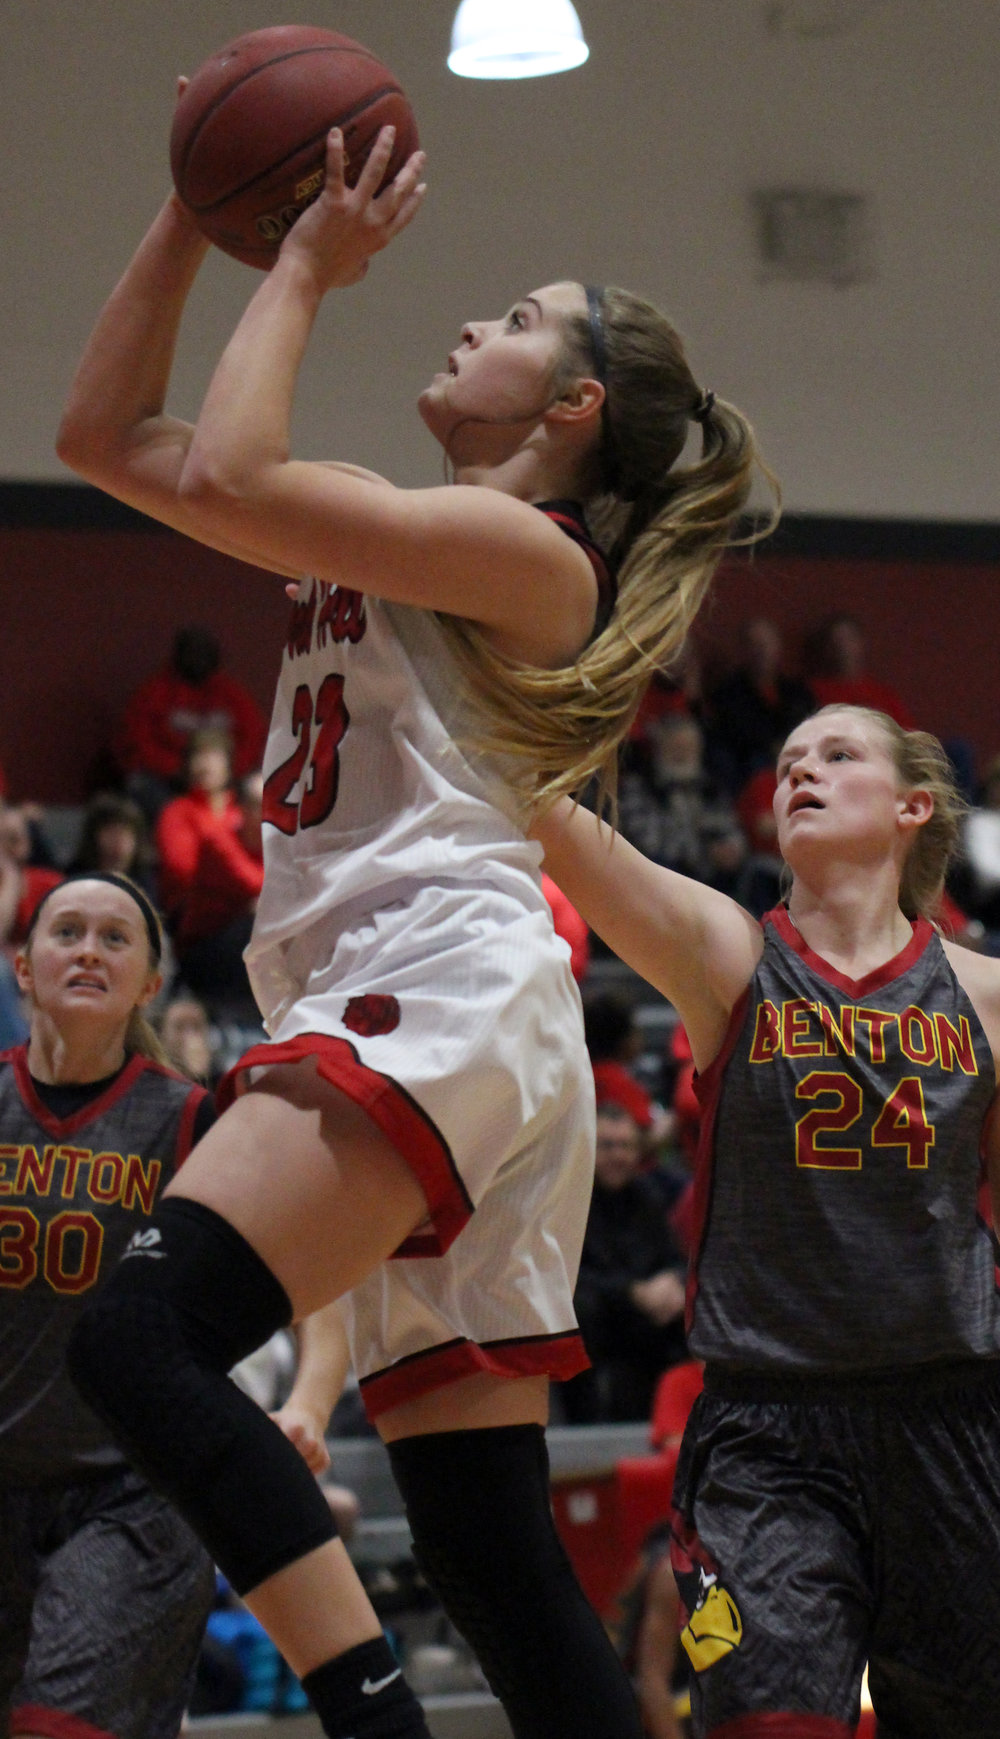 ROSS MARTIN/Citizen photo Park Hill freshman Hannah Graves goes in for a layup against Benton on Thursday, Dec. 7 at Park Hill High School in Kansas City, Mo.